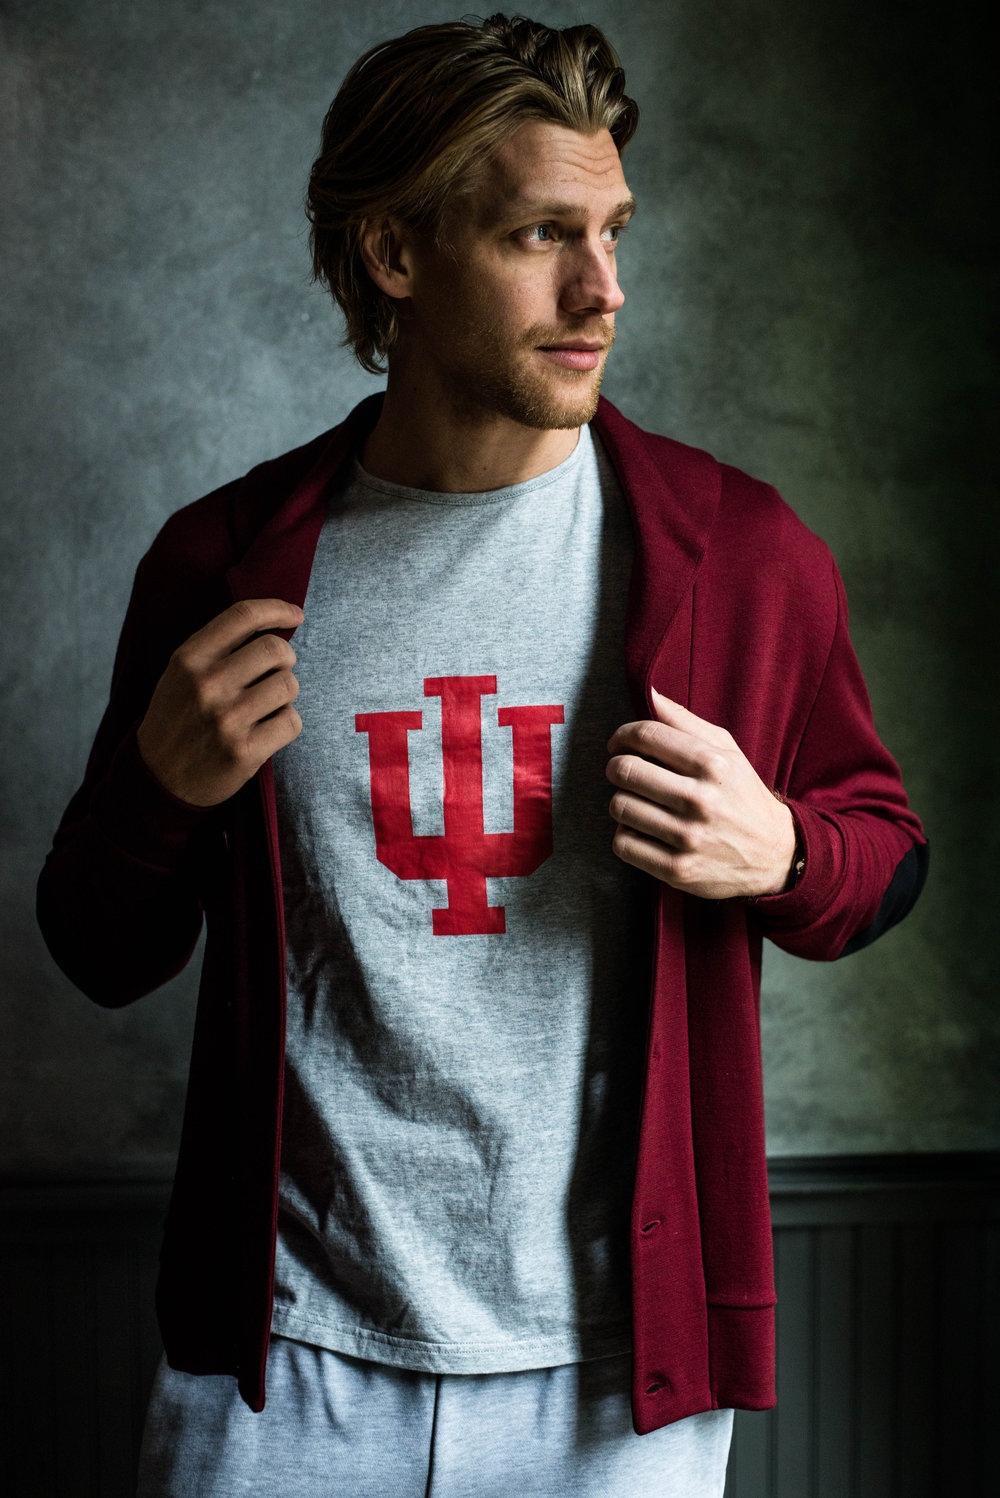 Grungy Gentleman x Indiana University 17.jpg